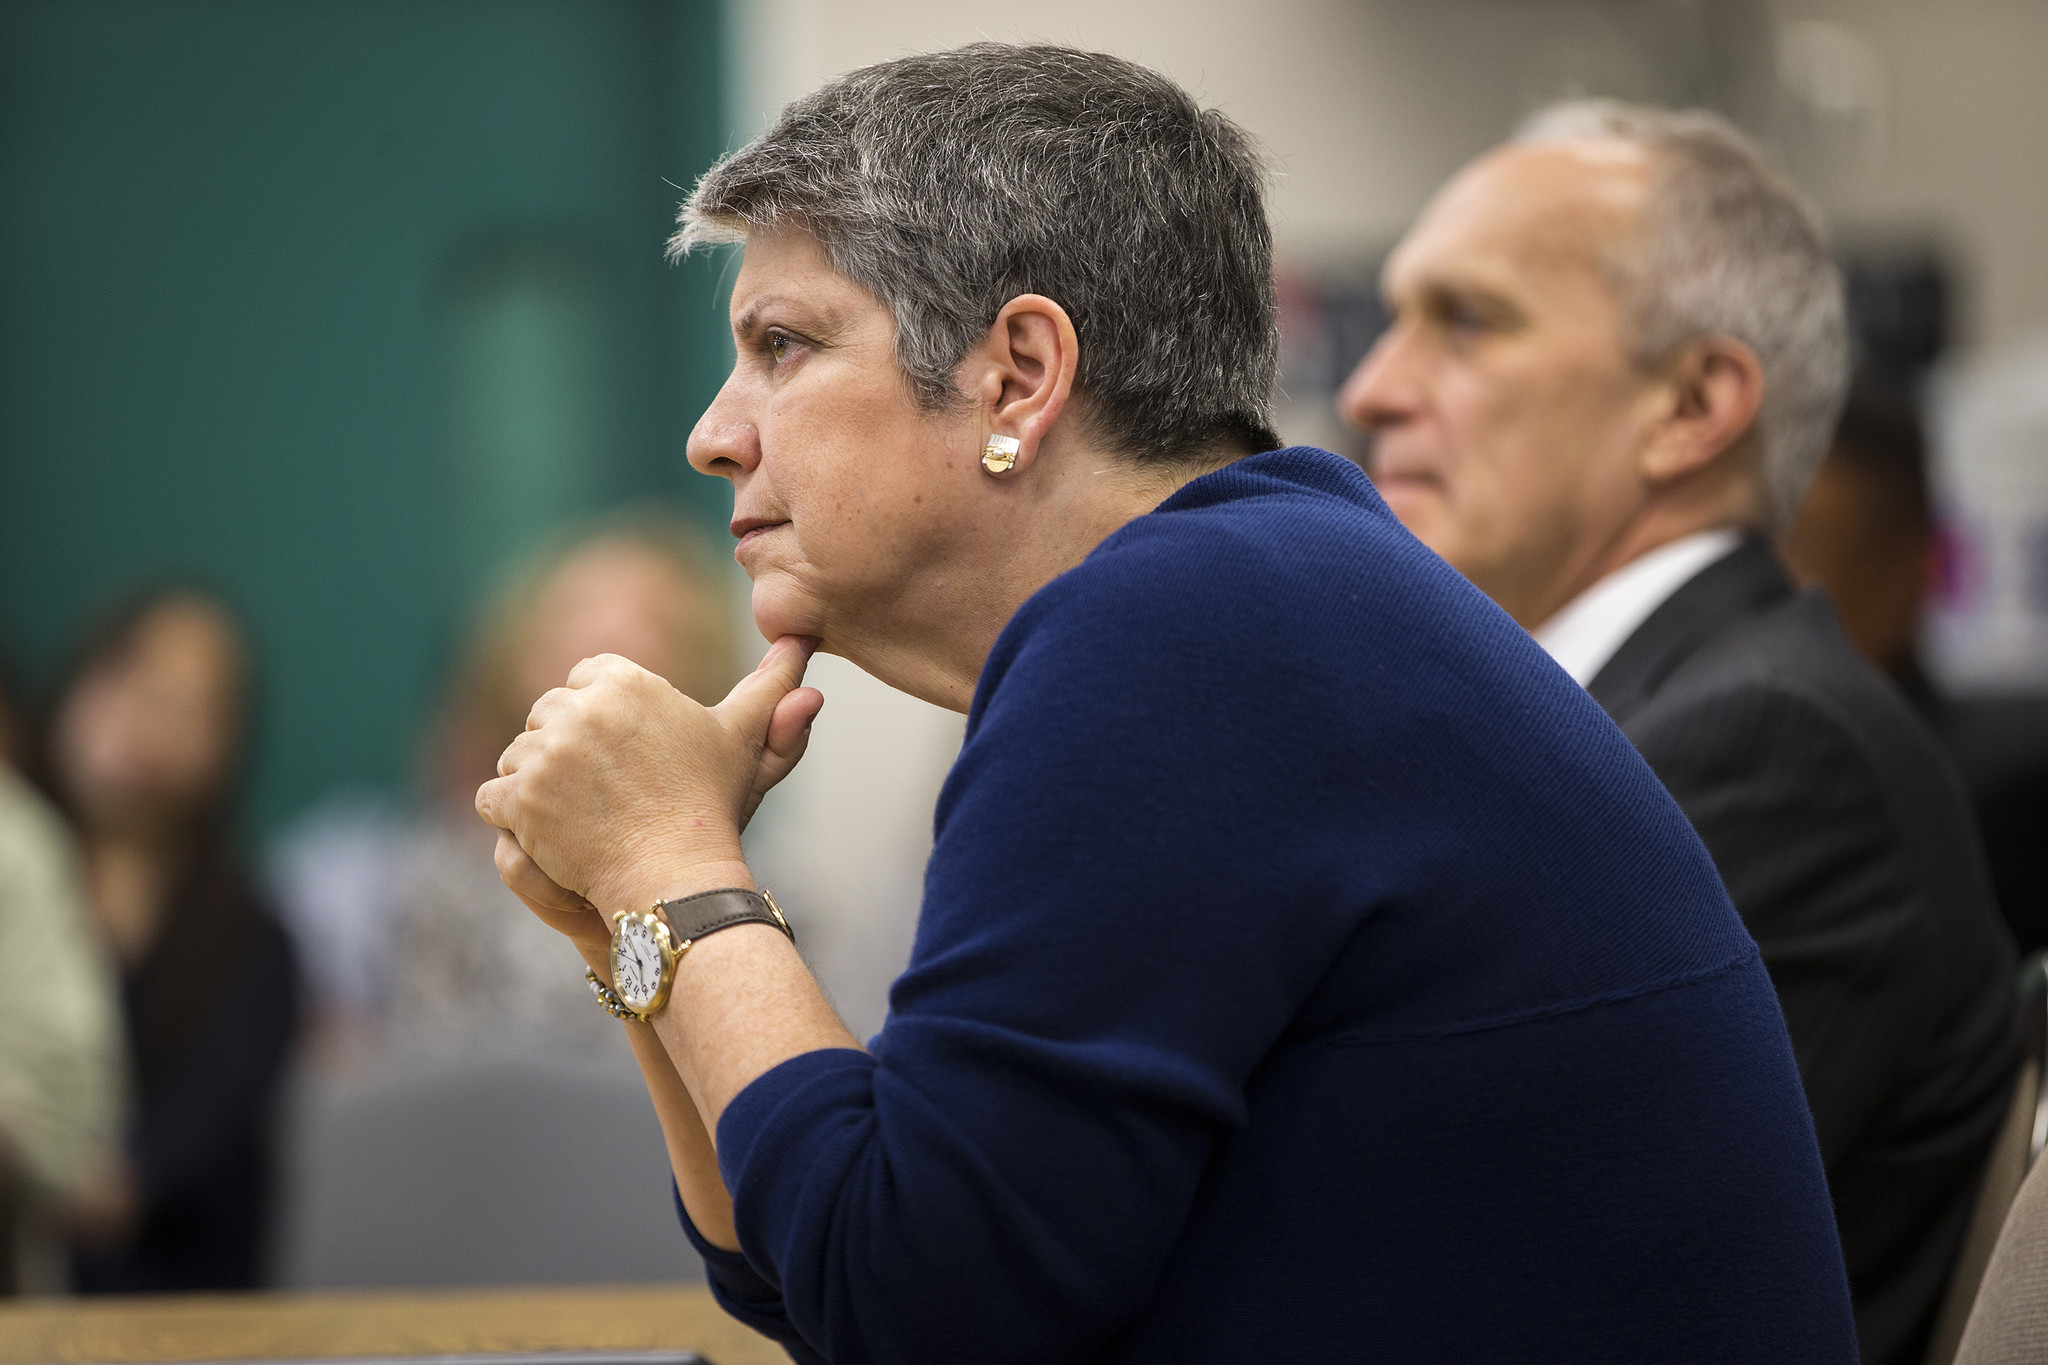 UC President Janet Napolitano undergoing cancer treatment, expected to return to duties 'very soon'